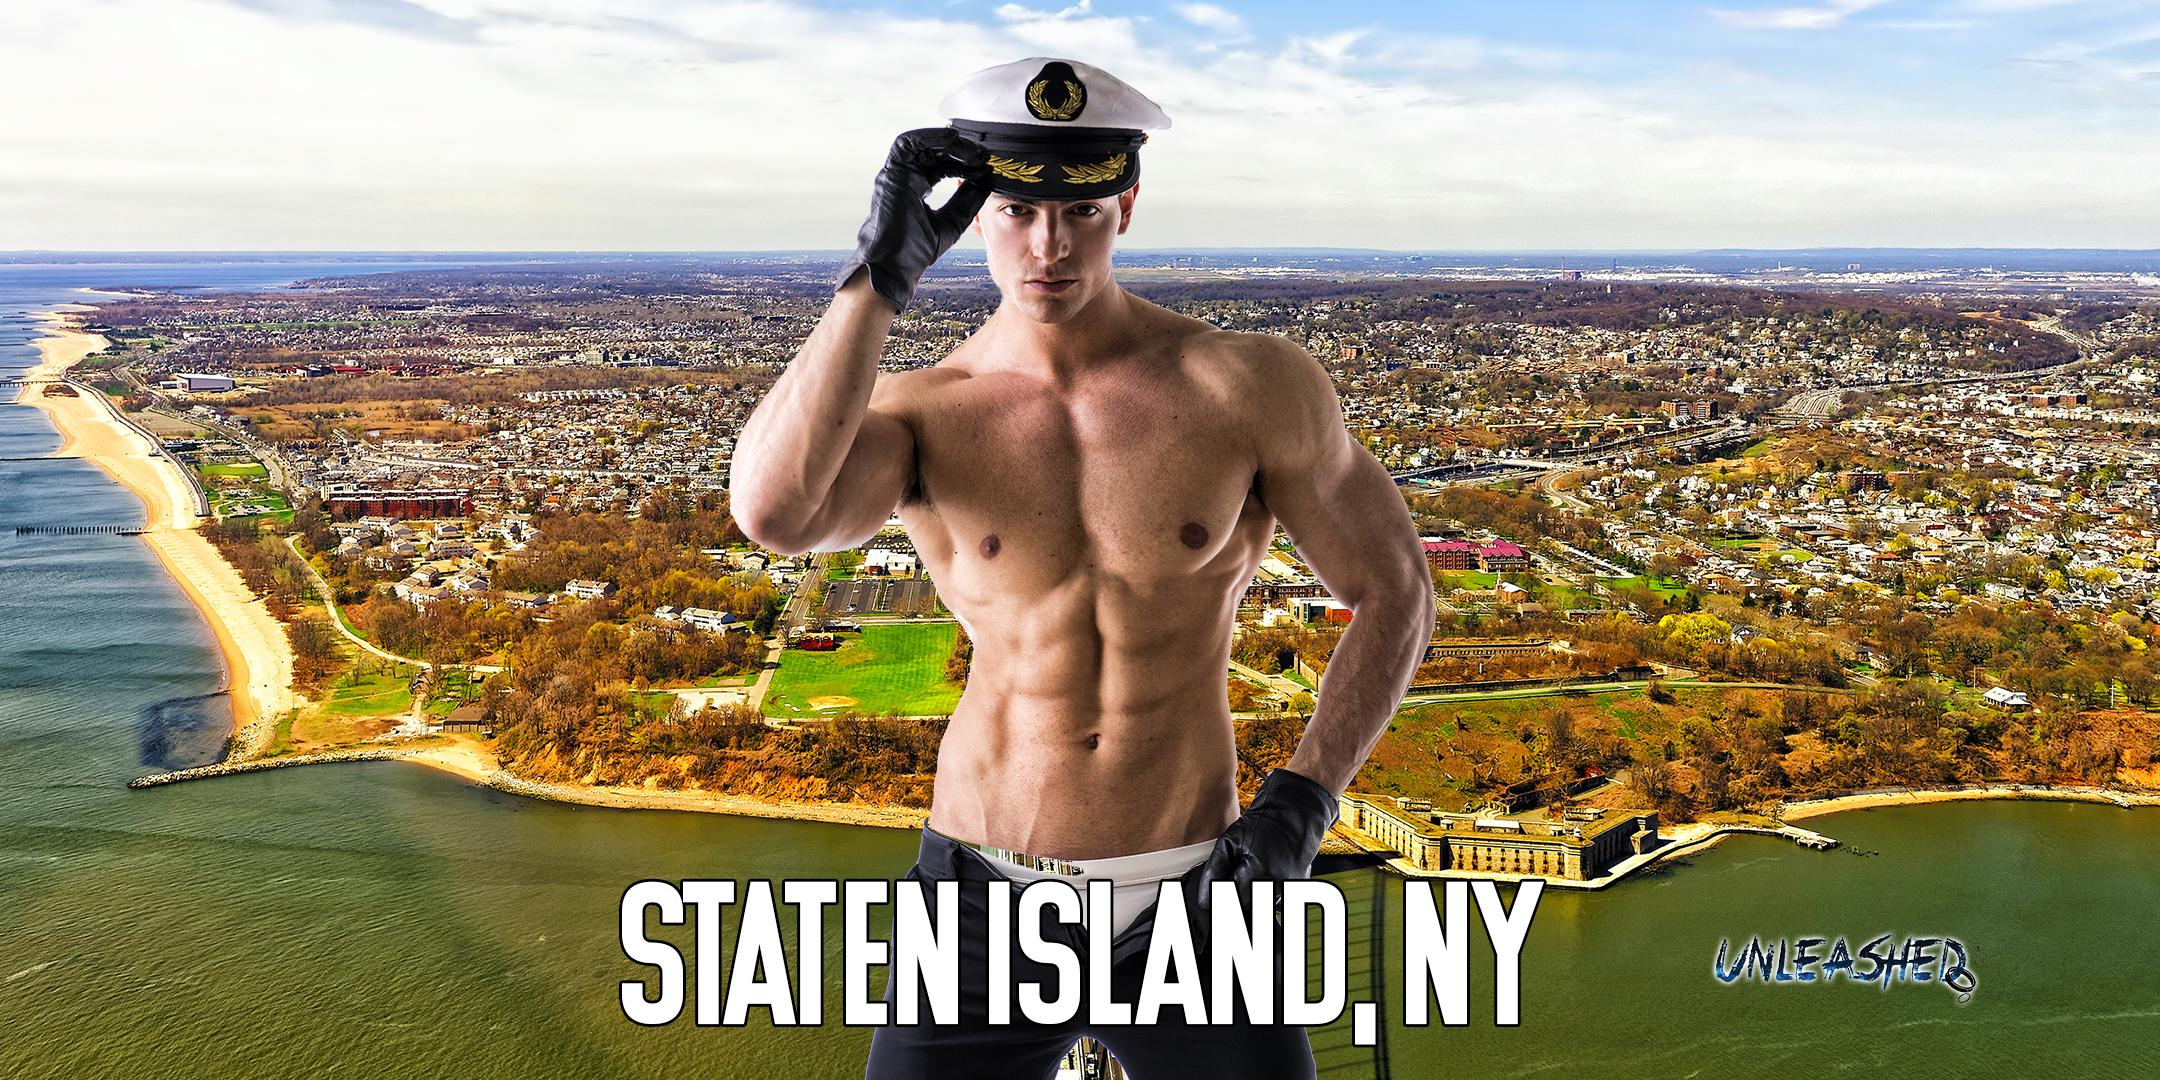 Male Strippers UNLEASHED Male Revue Staten Island NY